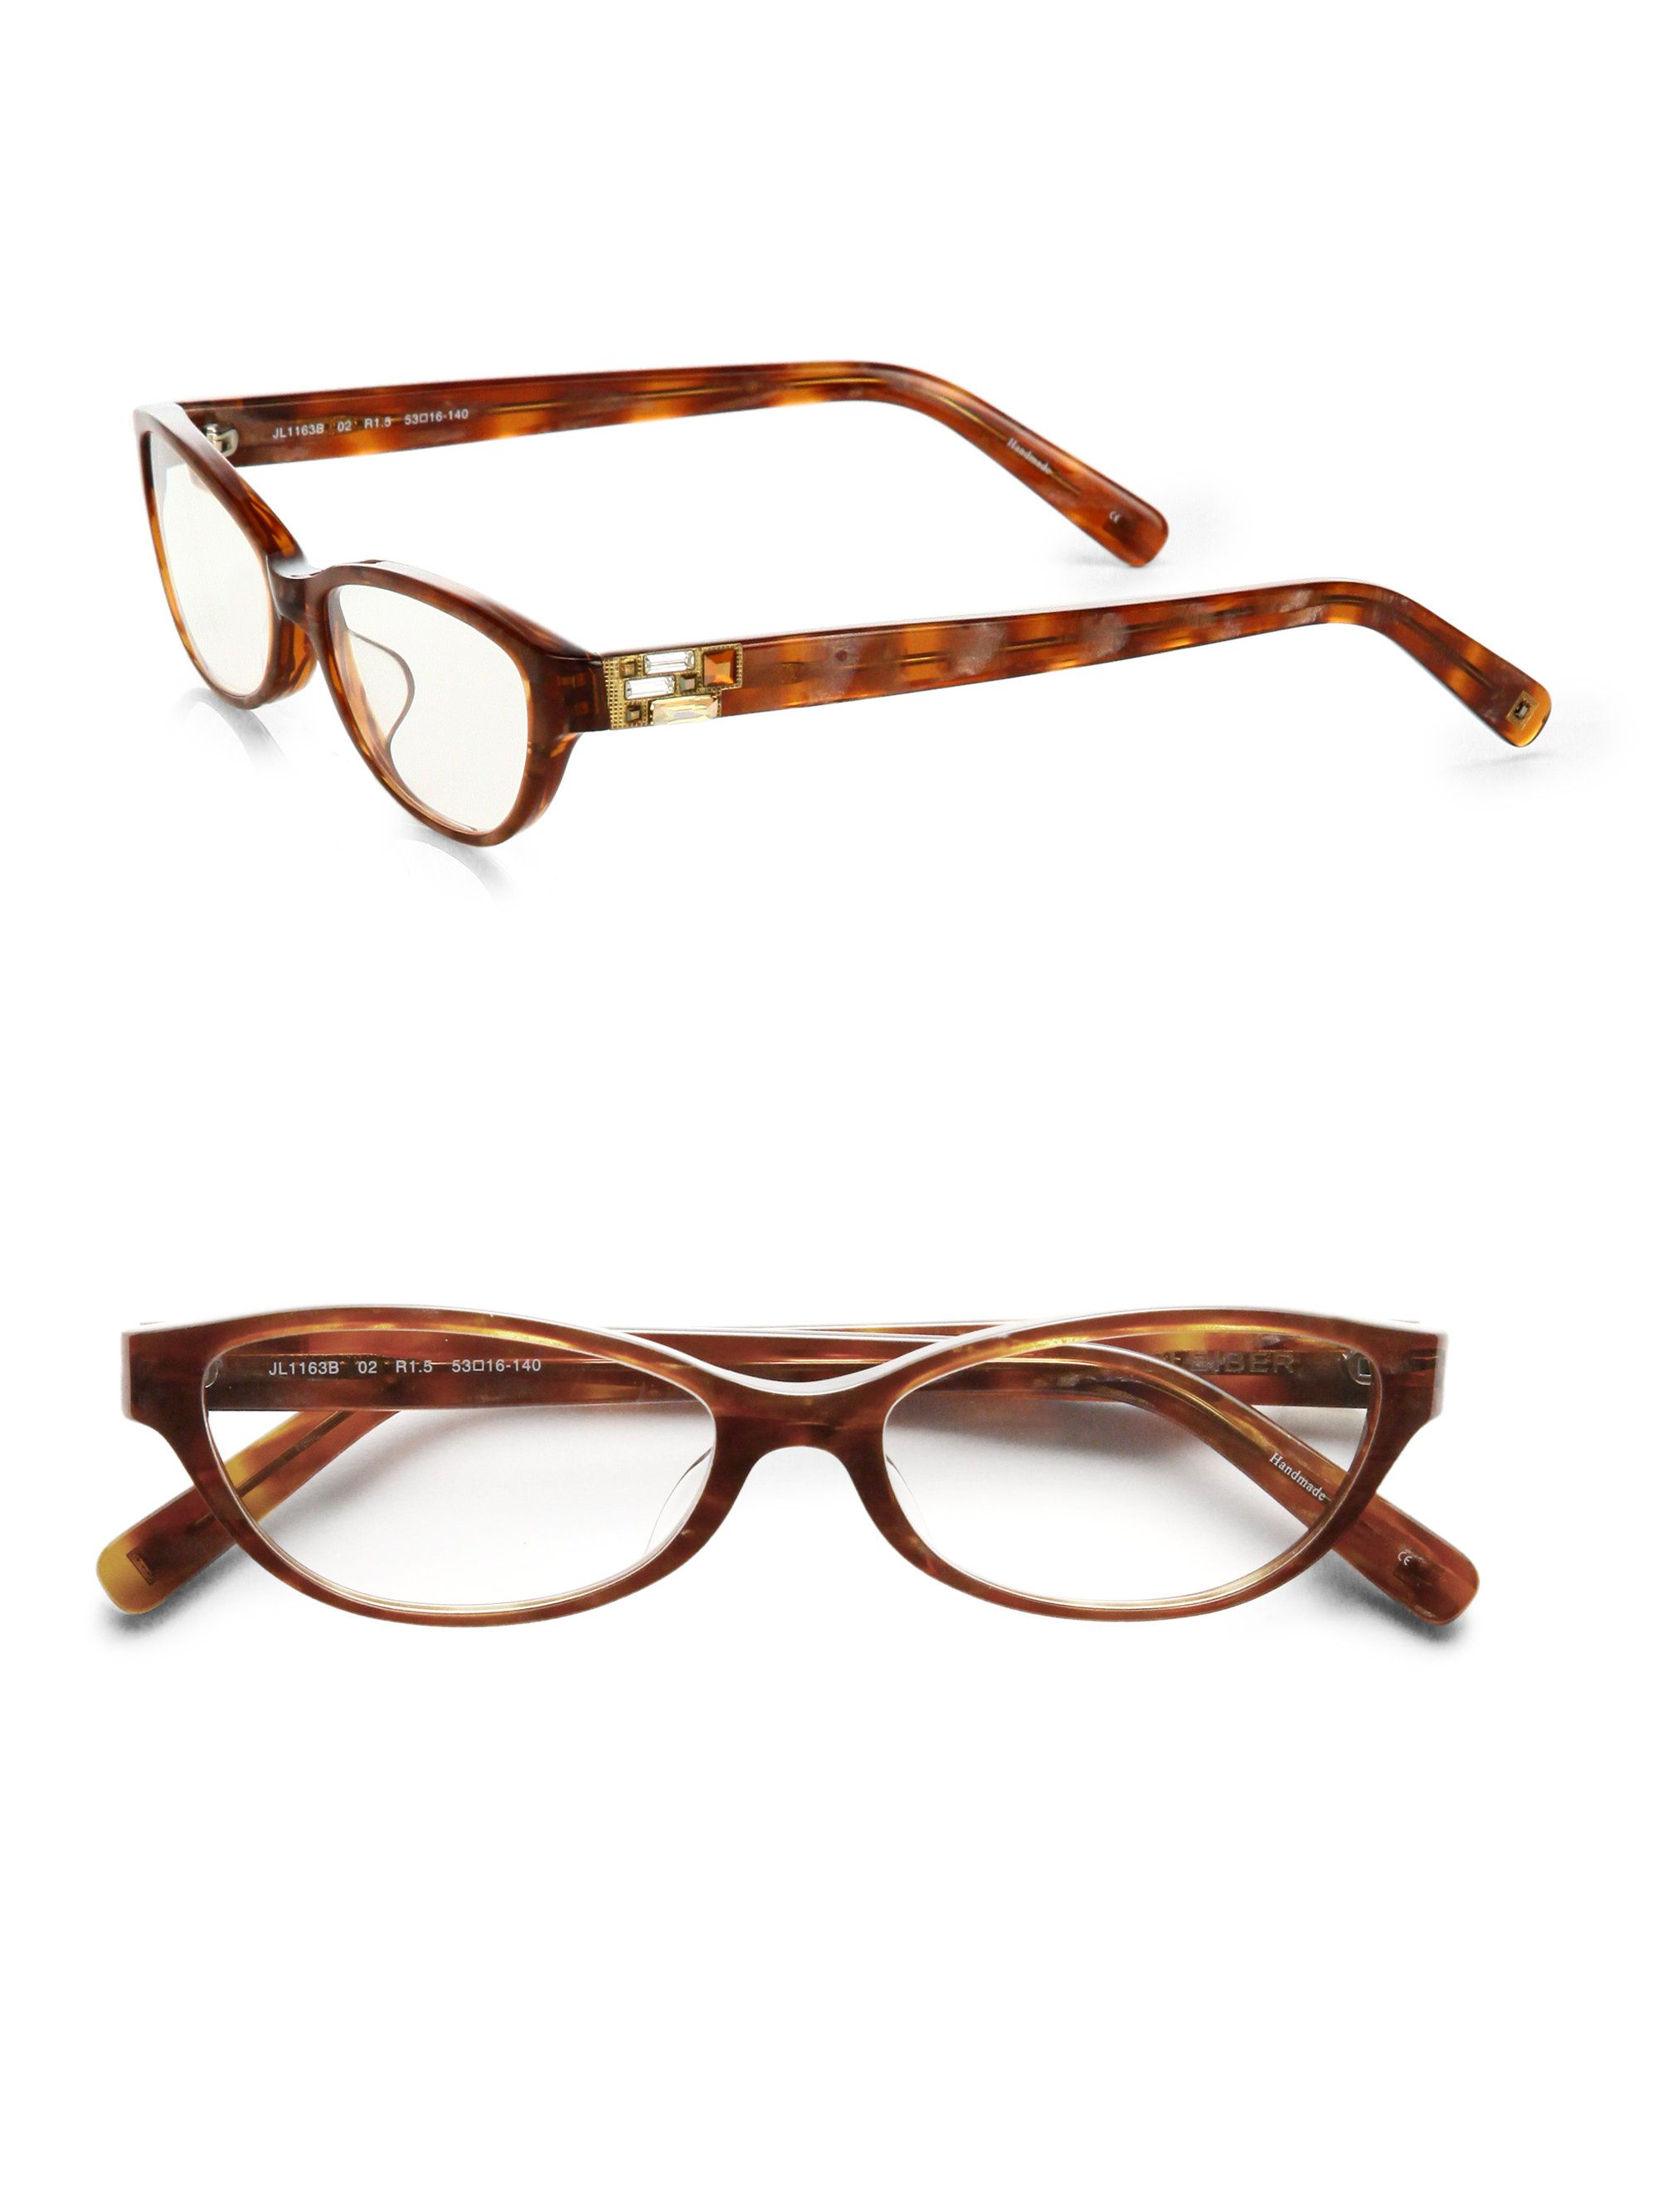 abaaca01b28 Judith Leiber Cat Eye Glasses Premium designer outlet online boutique at  luxlu.com